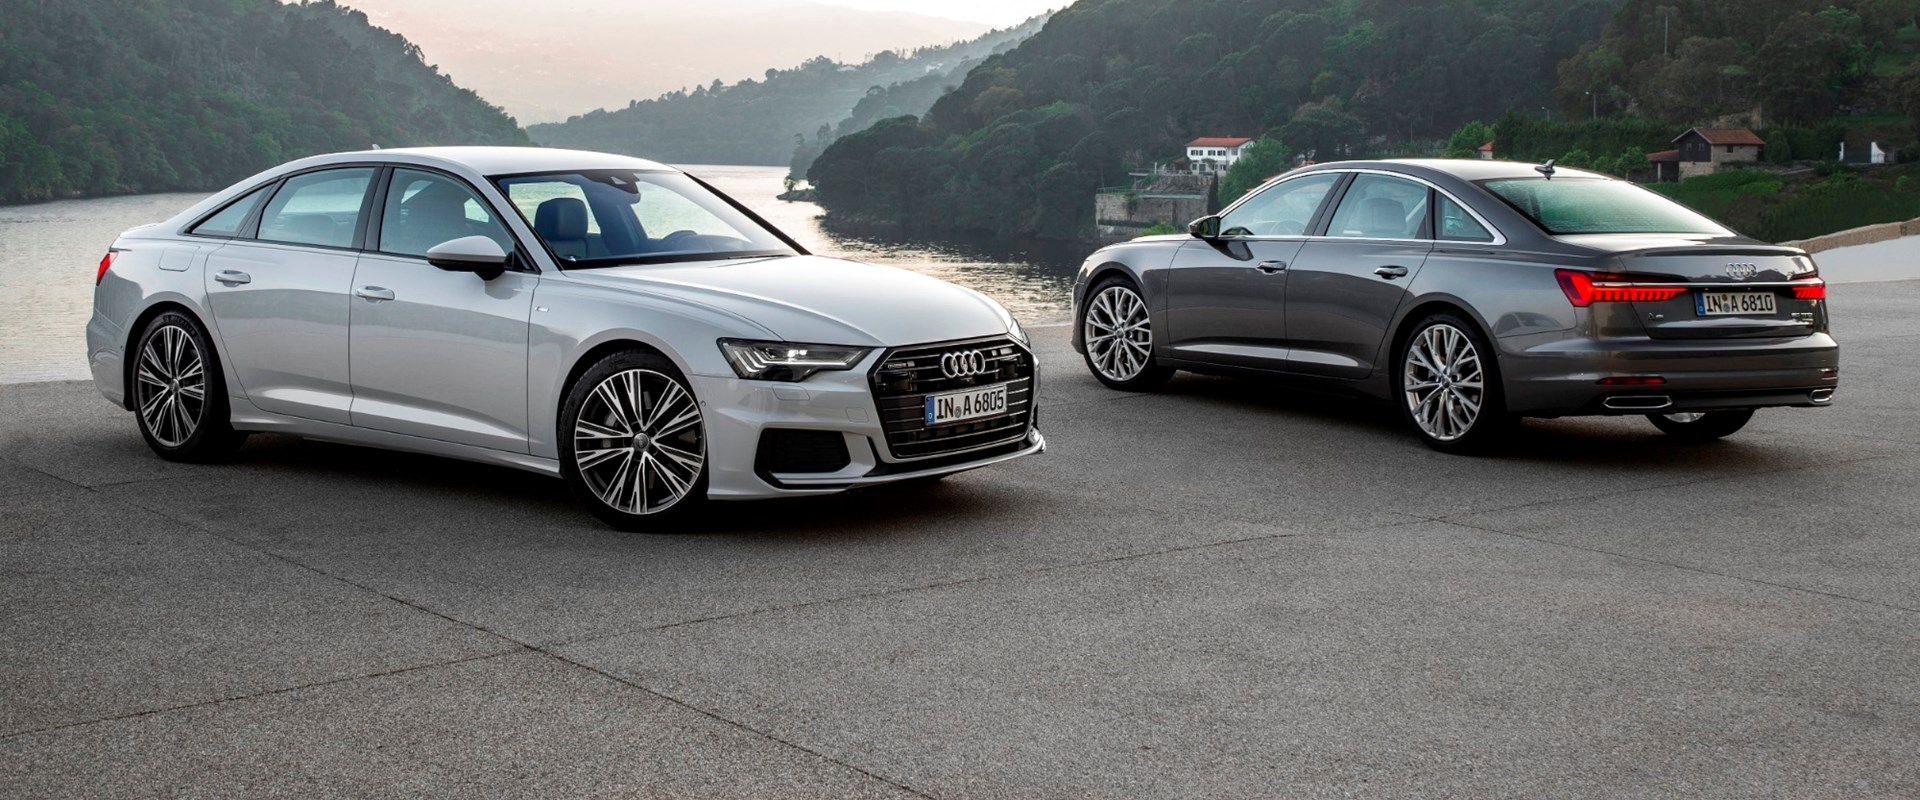 2019 Audi A6 First Drive Review Truly The A8 S Baby